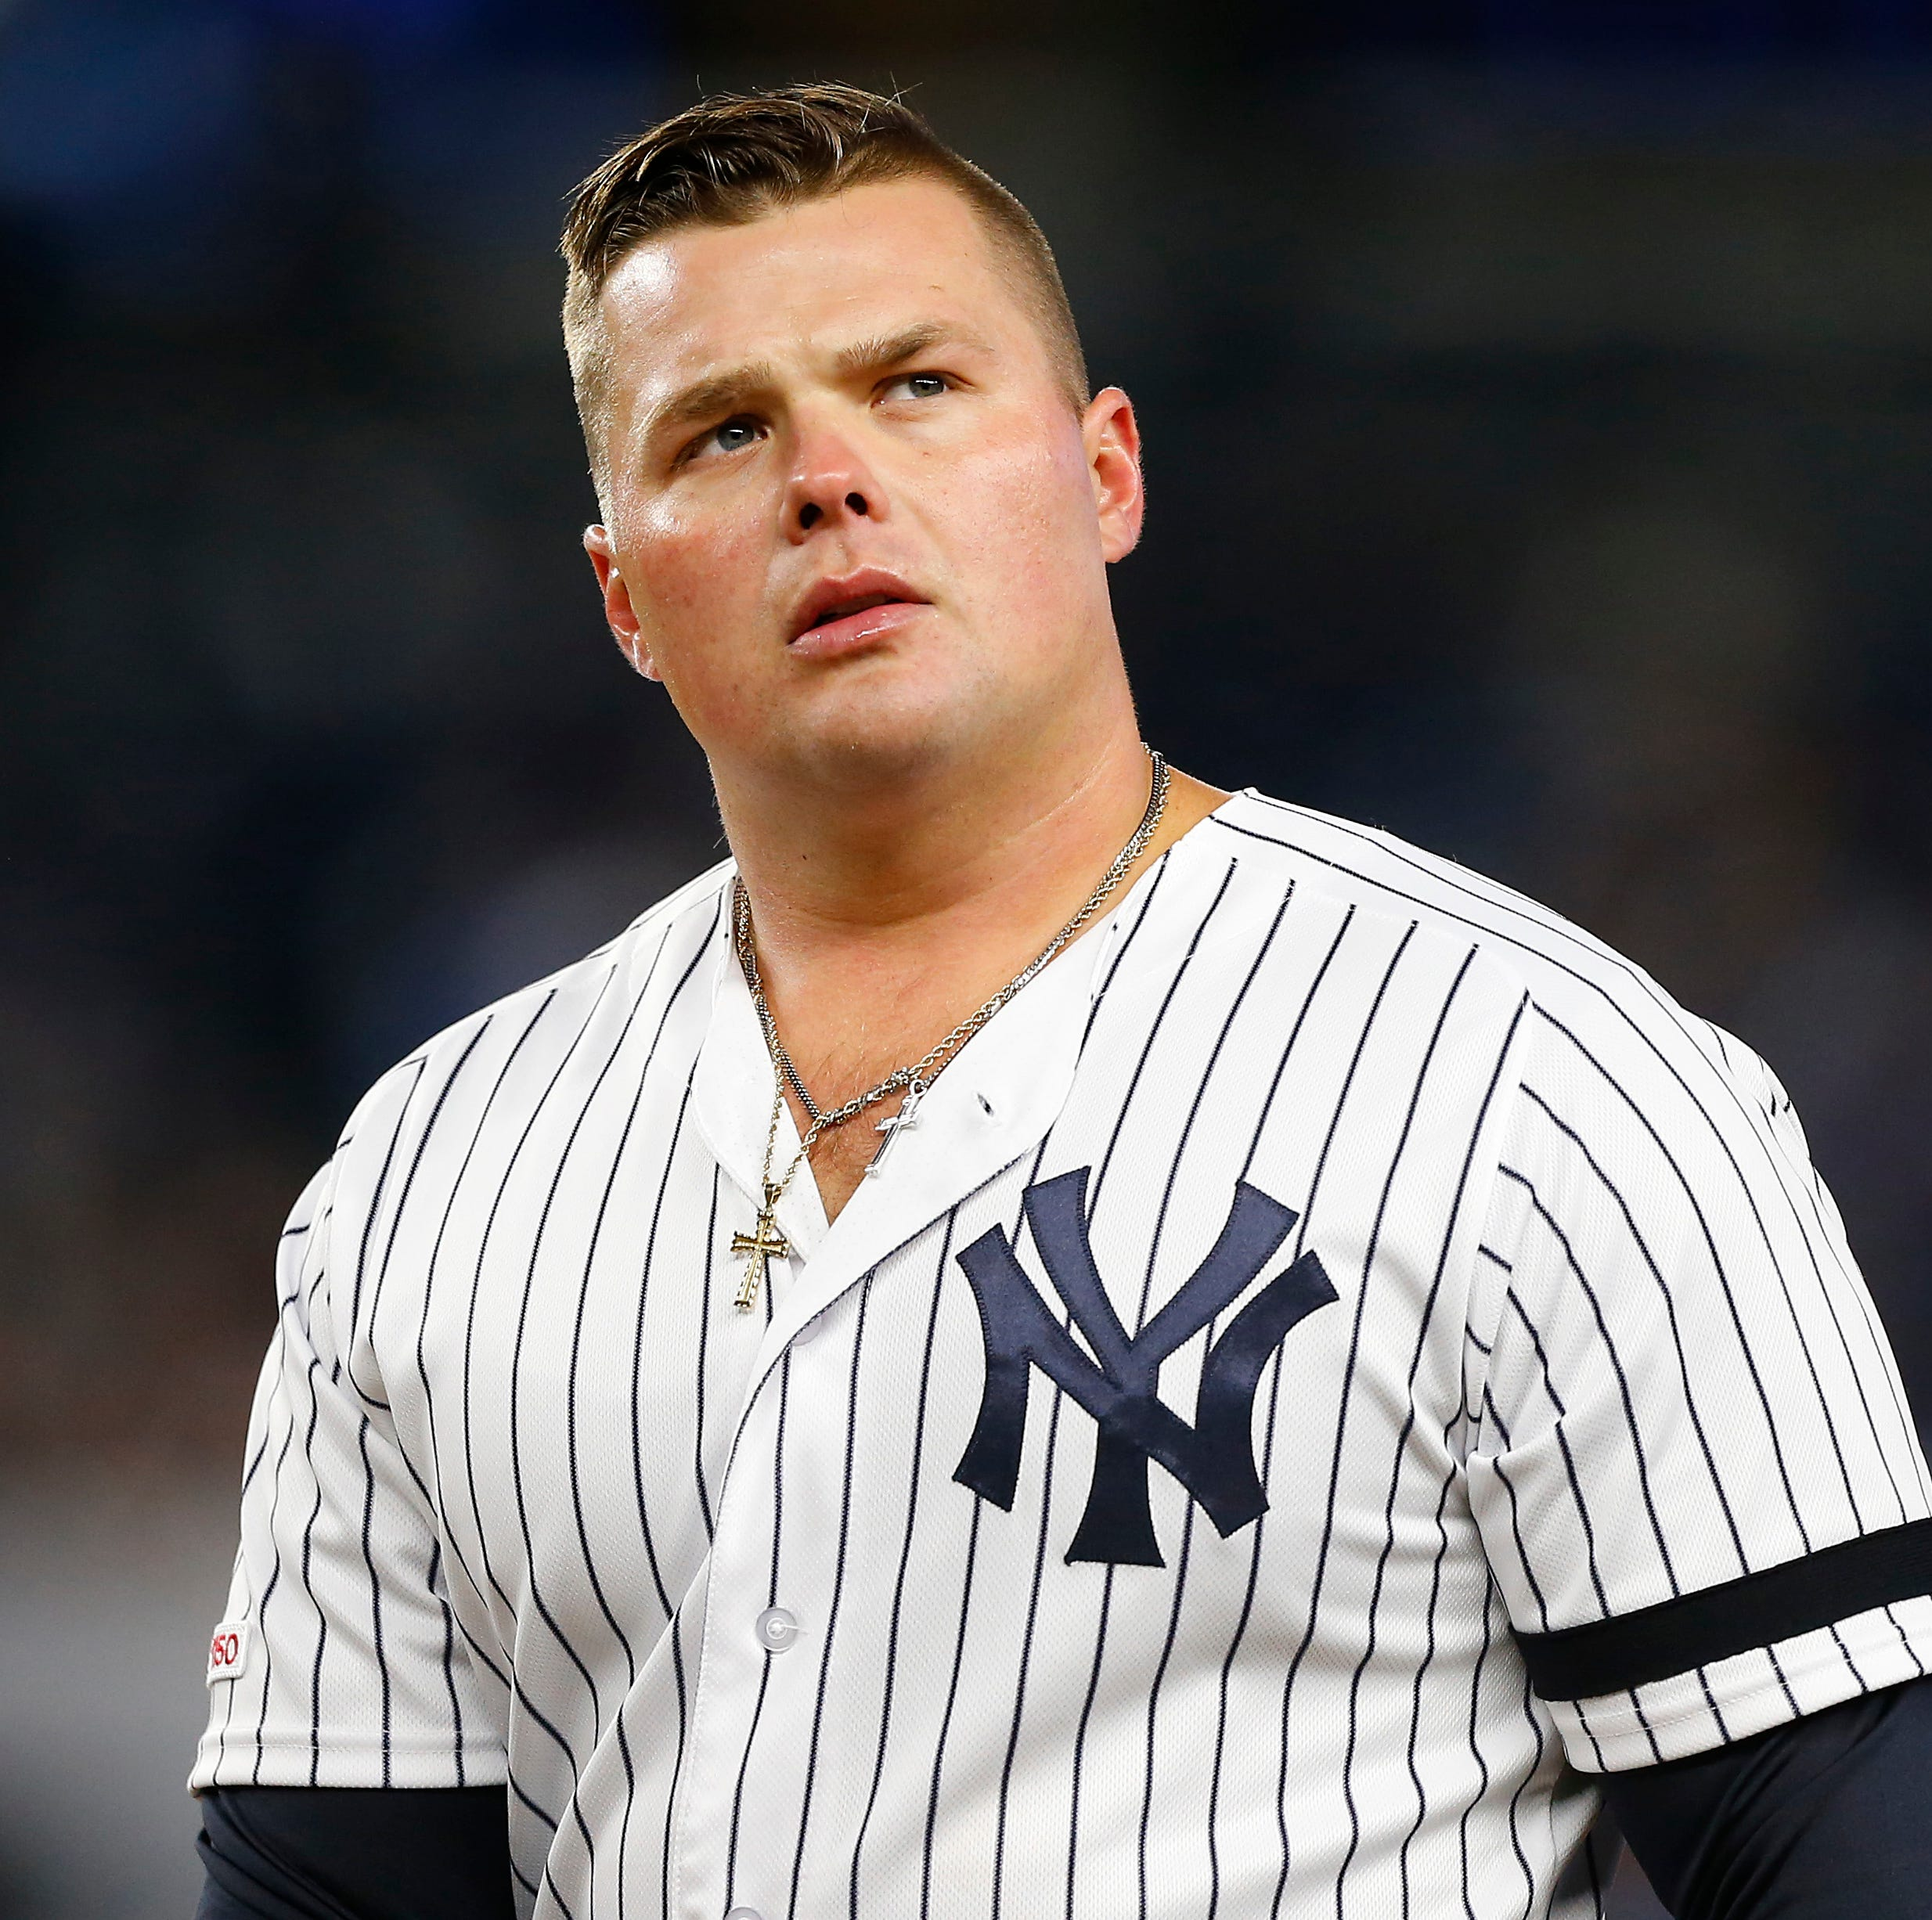 Former Missouri State slugger Luke Voit is on a tear with the New York Yankees